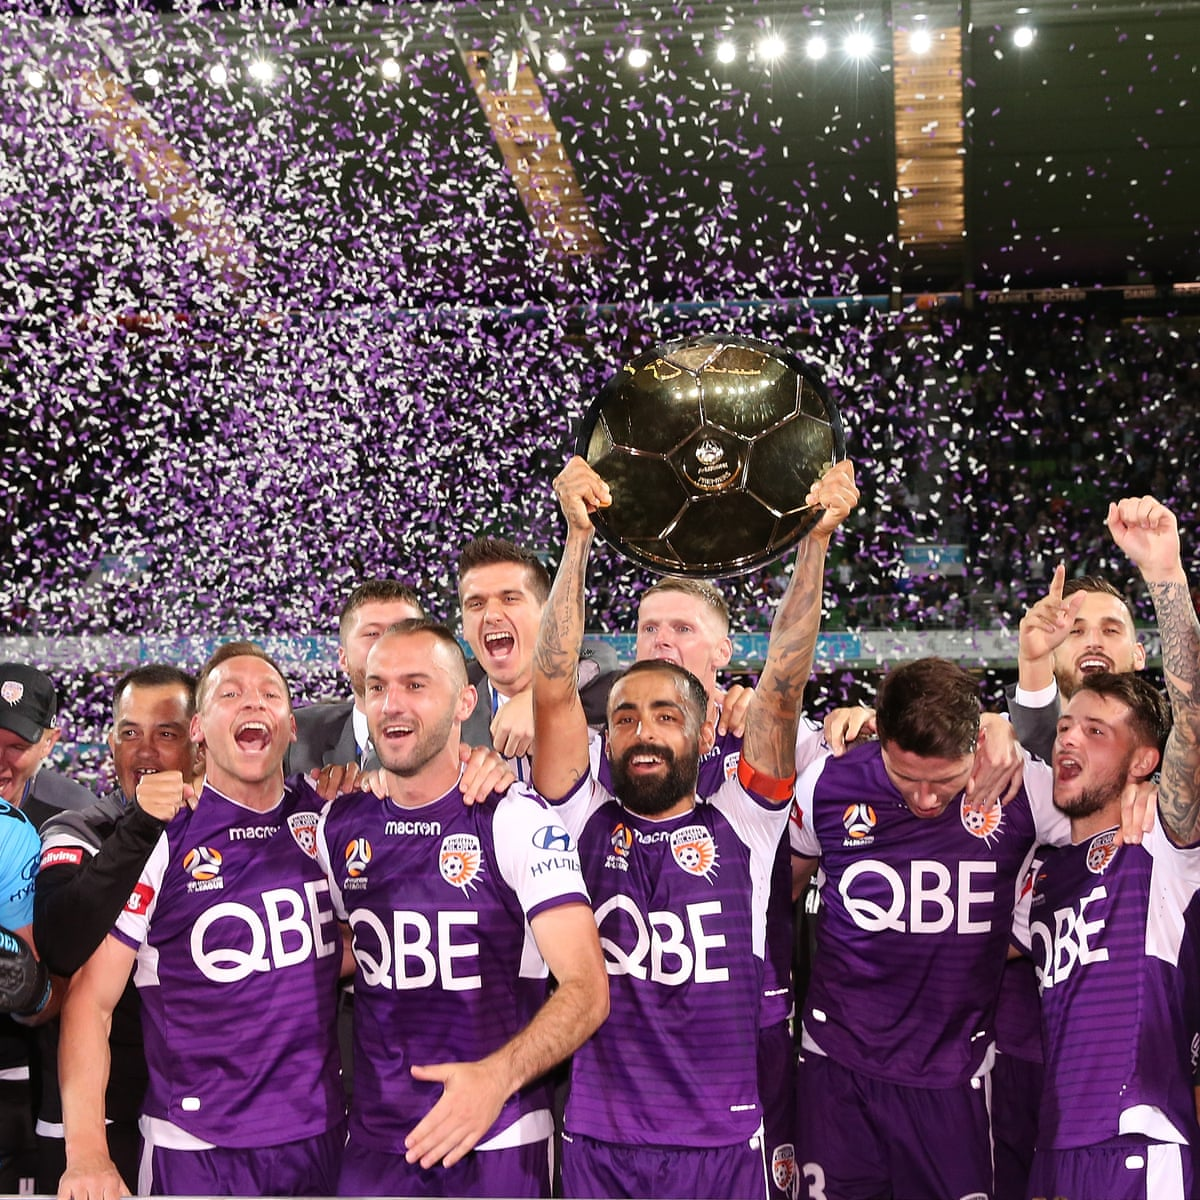 Newcastle jets vs perth glory betting expert boxing labour leadership betting odds